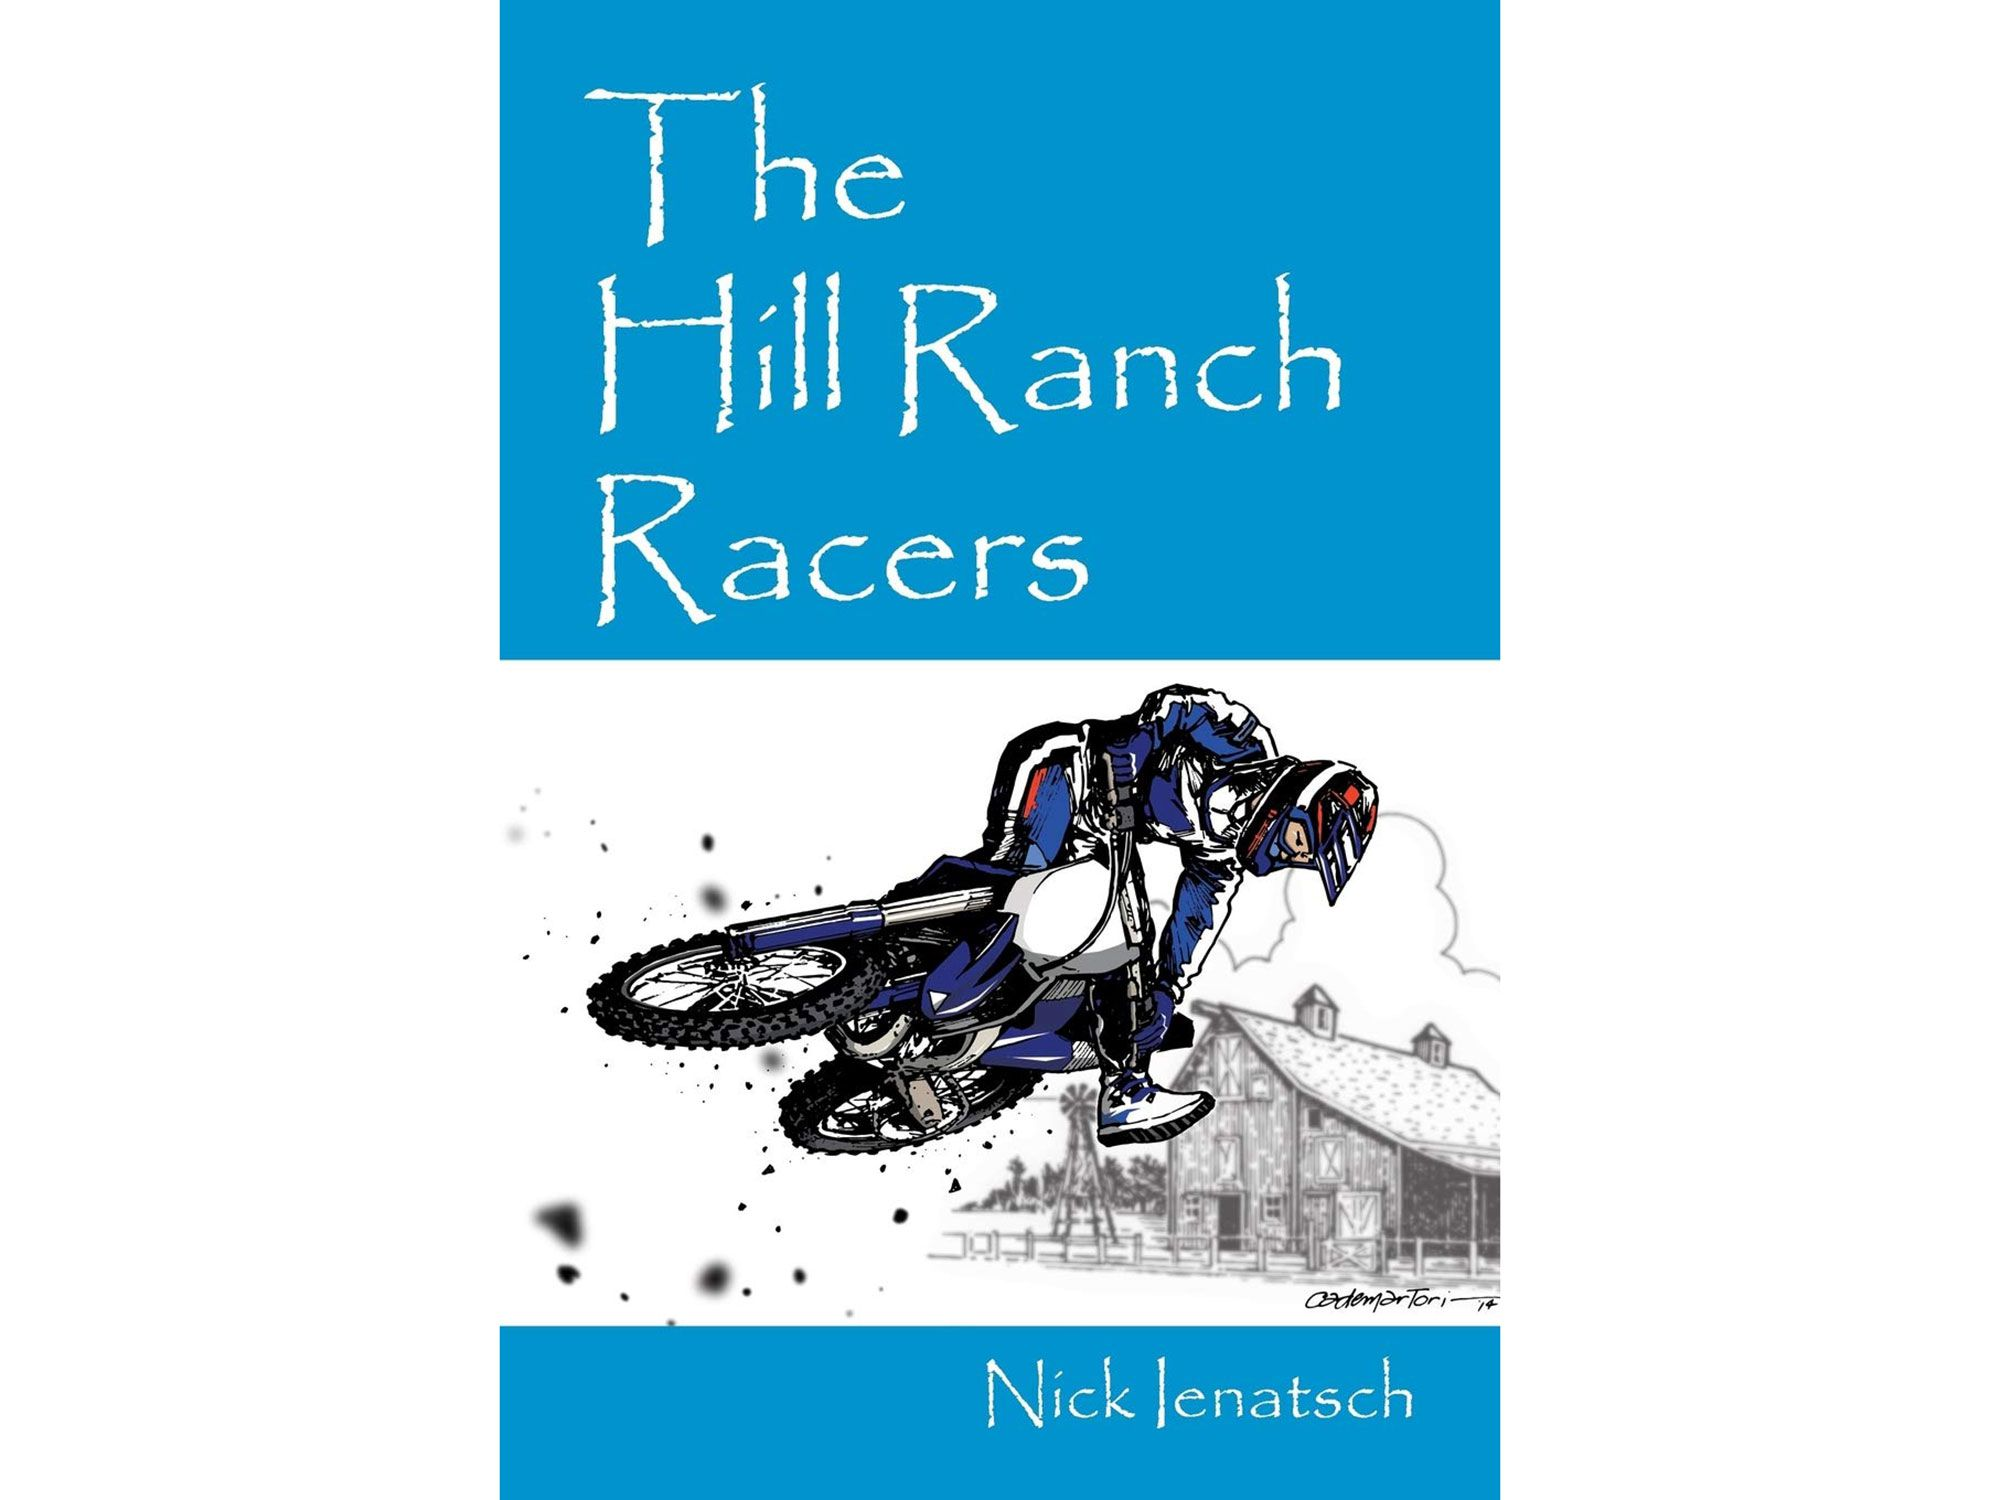 If you hunger for more of Nick's fiction, and who wouldn't, buy his novel <em>The Hill Ranch Racers</em> available on Amazon.